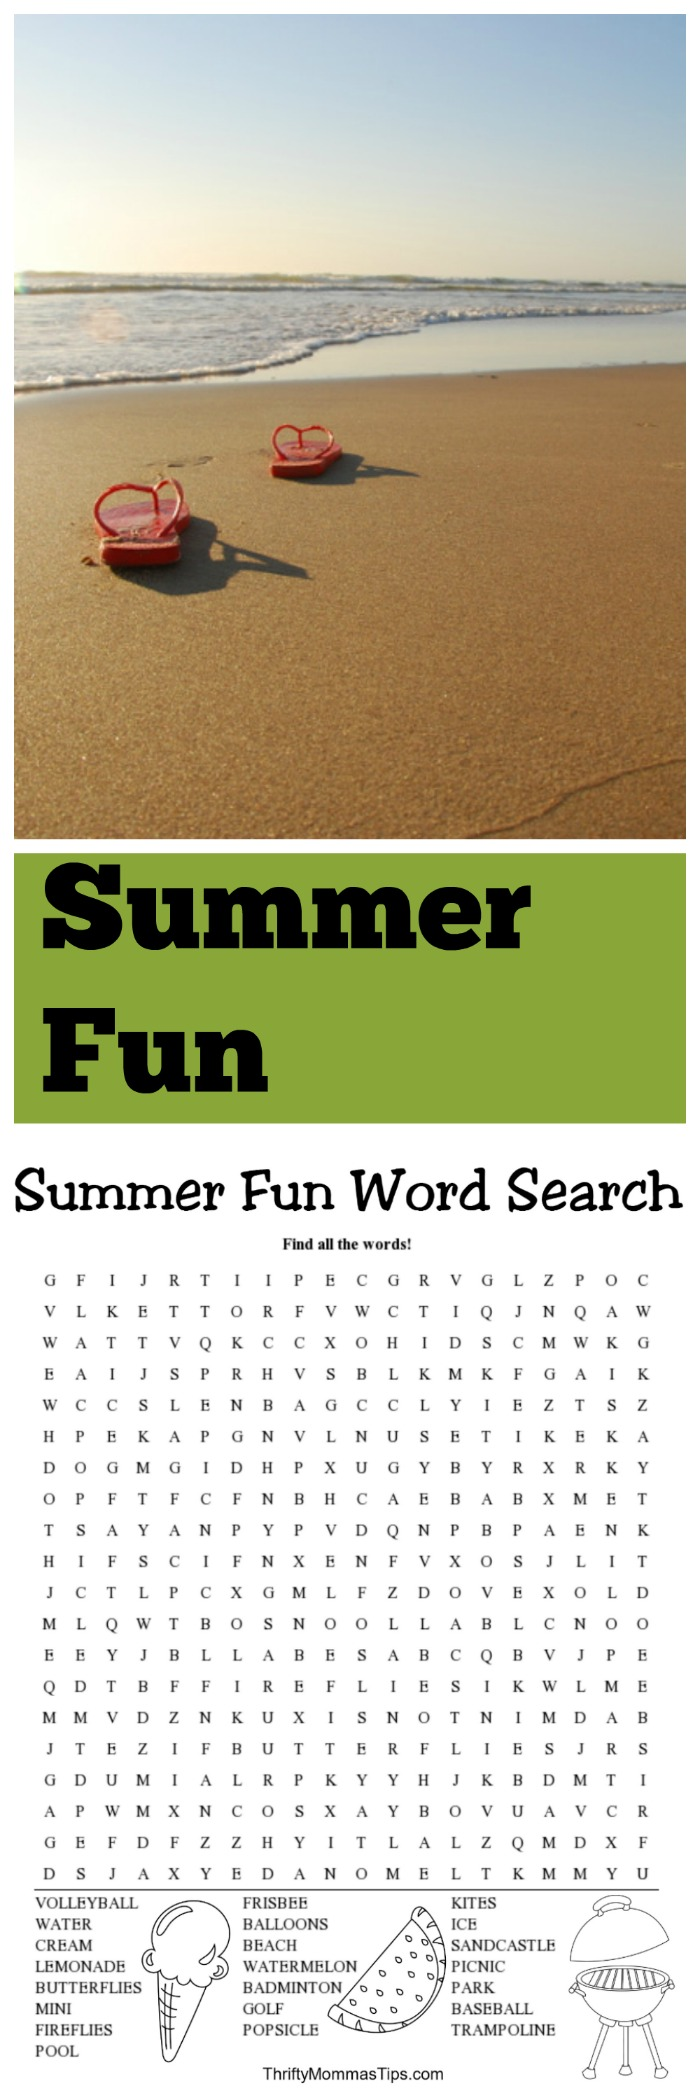 Summer_Fun_Word_Search